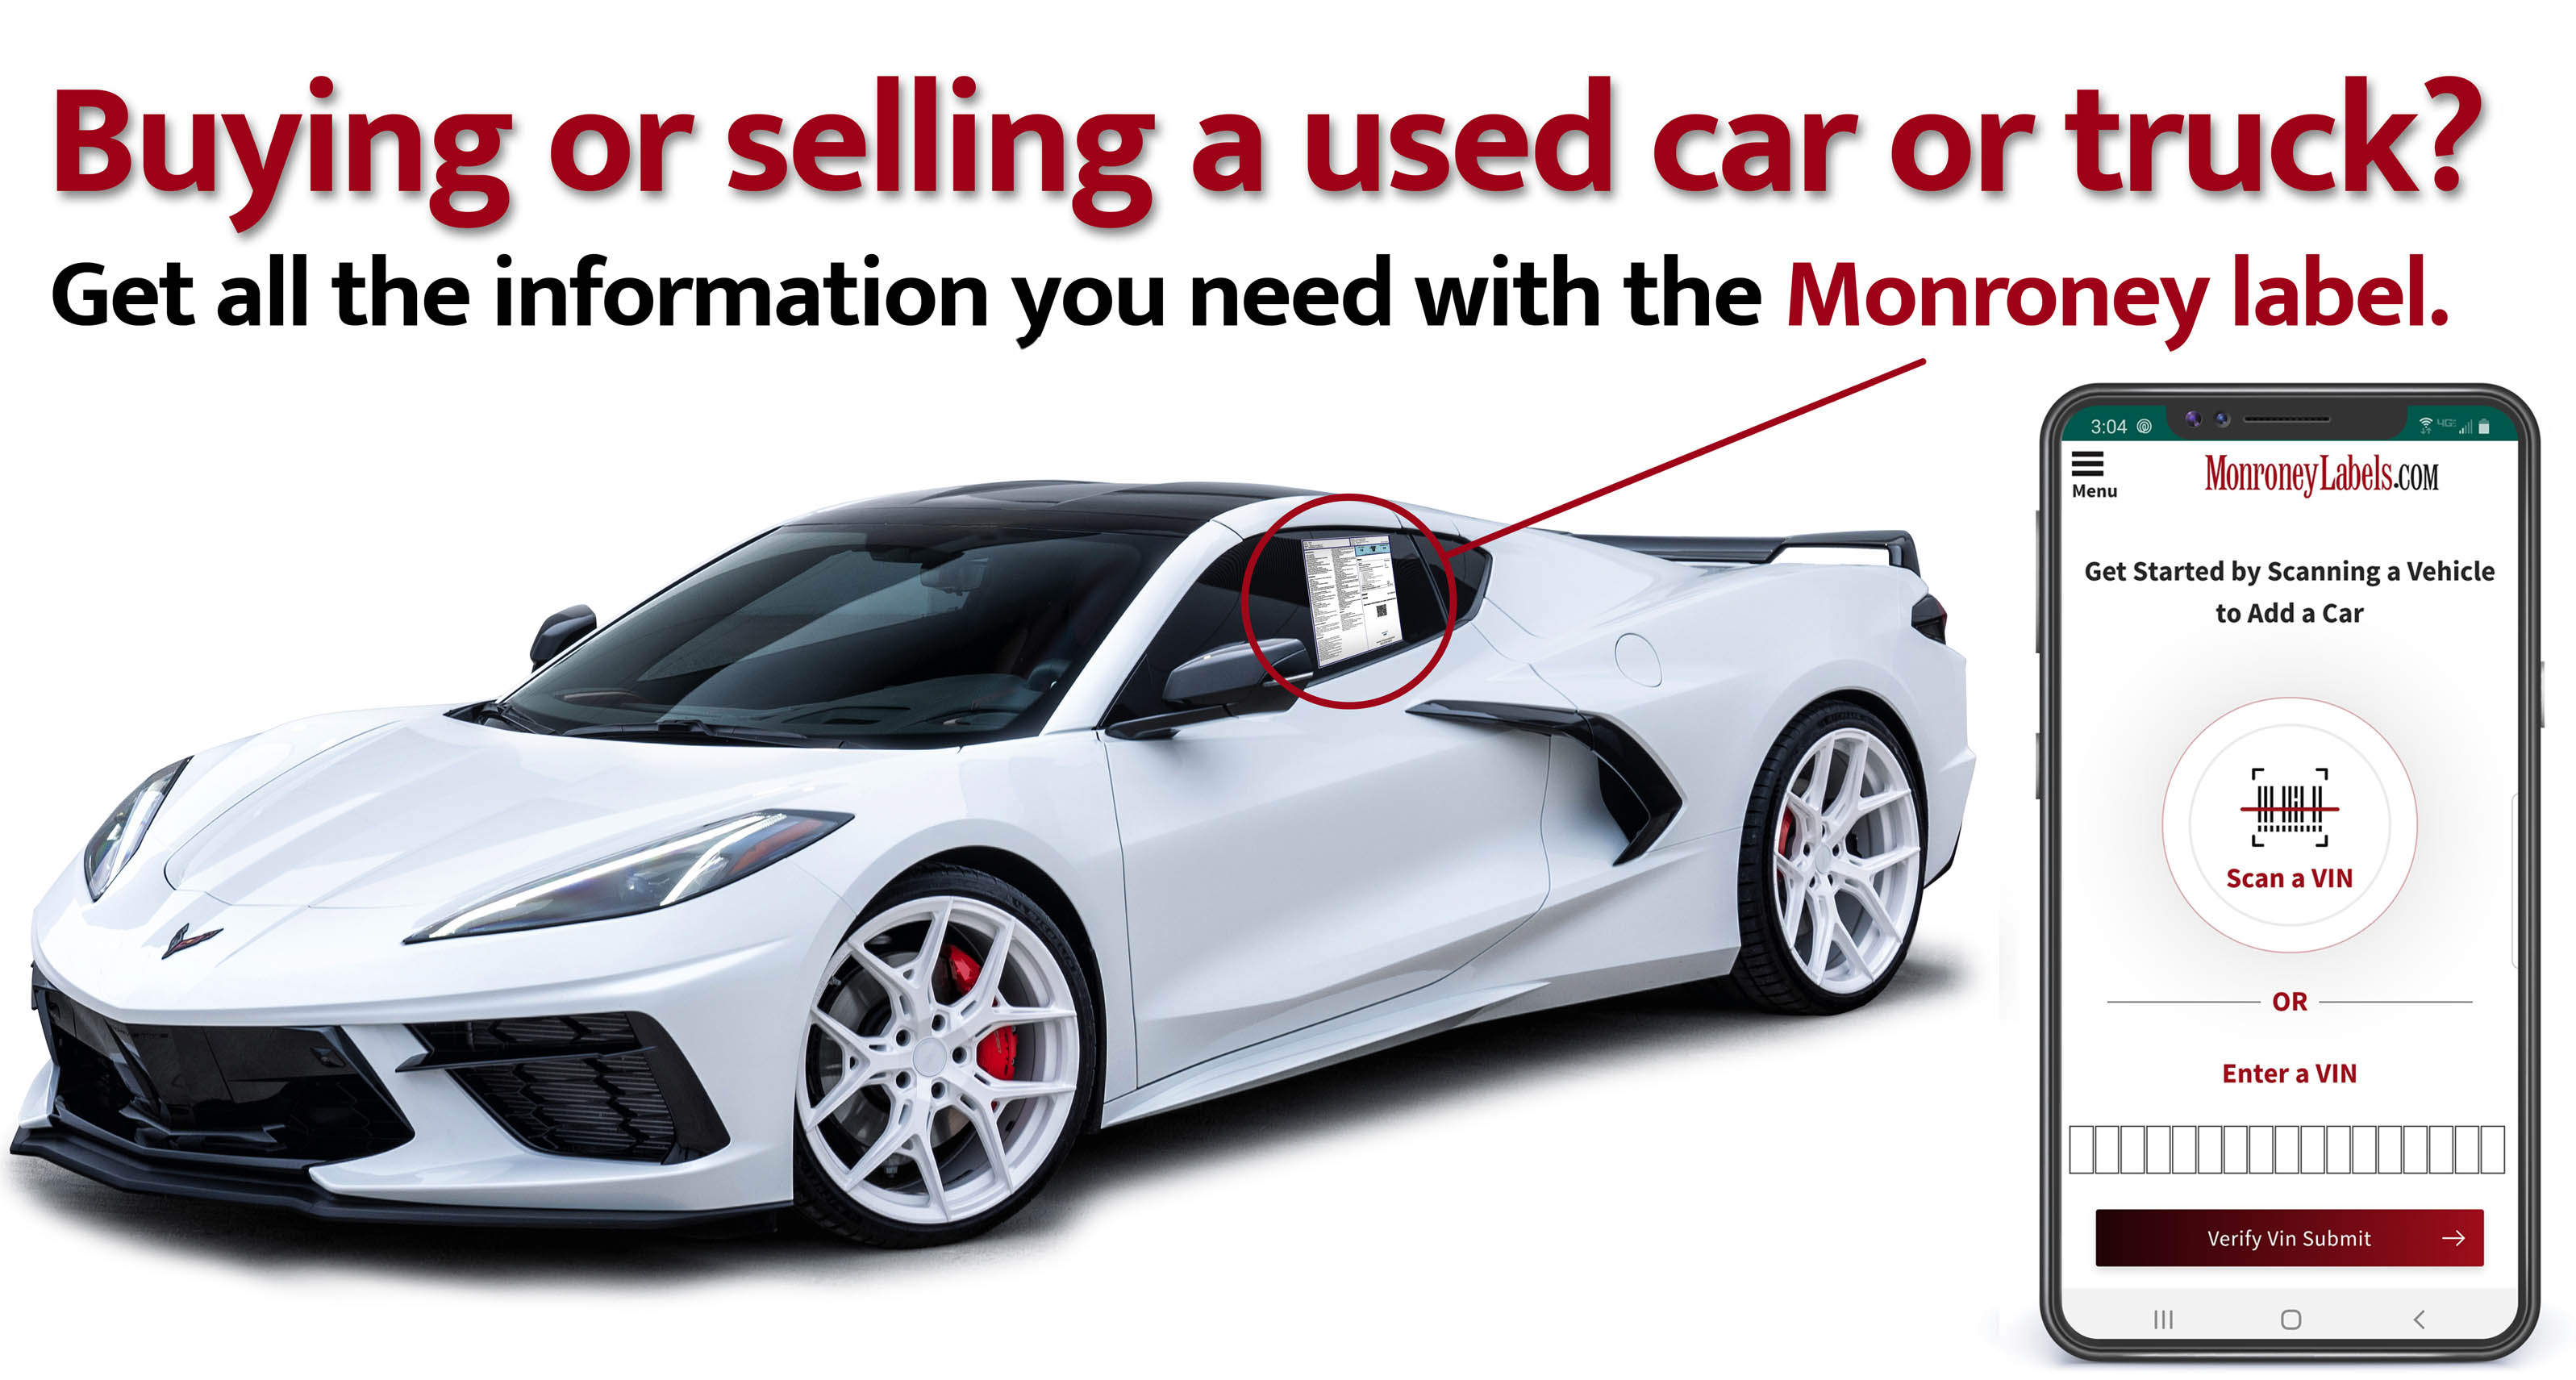 Get all the information you need with the Monroney label.